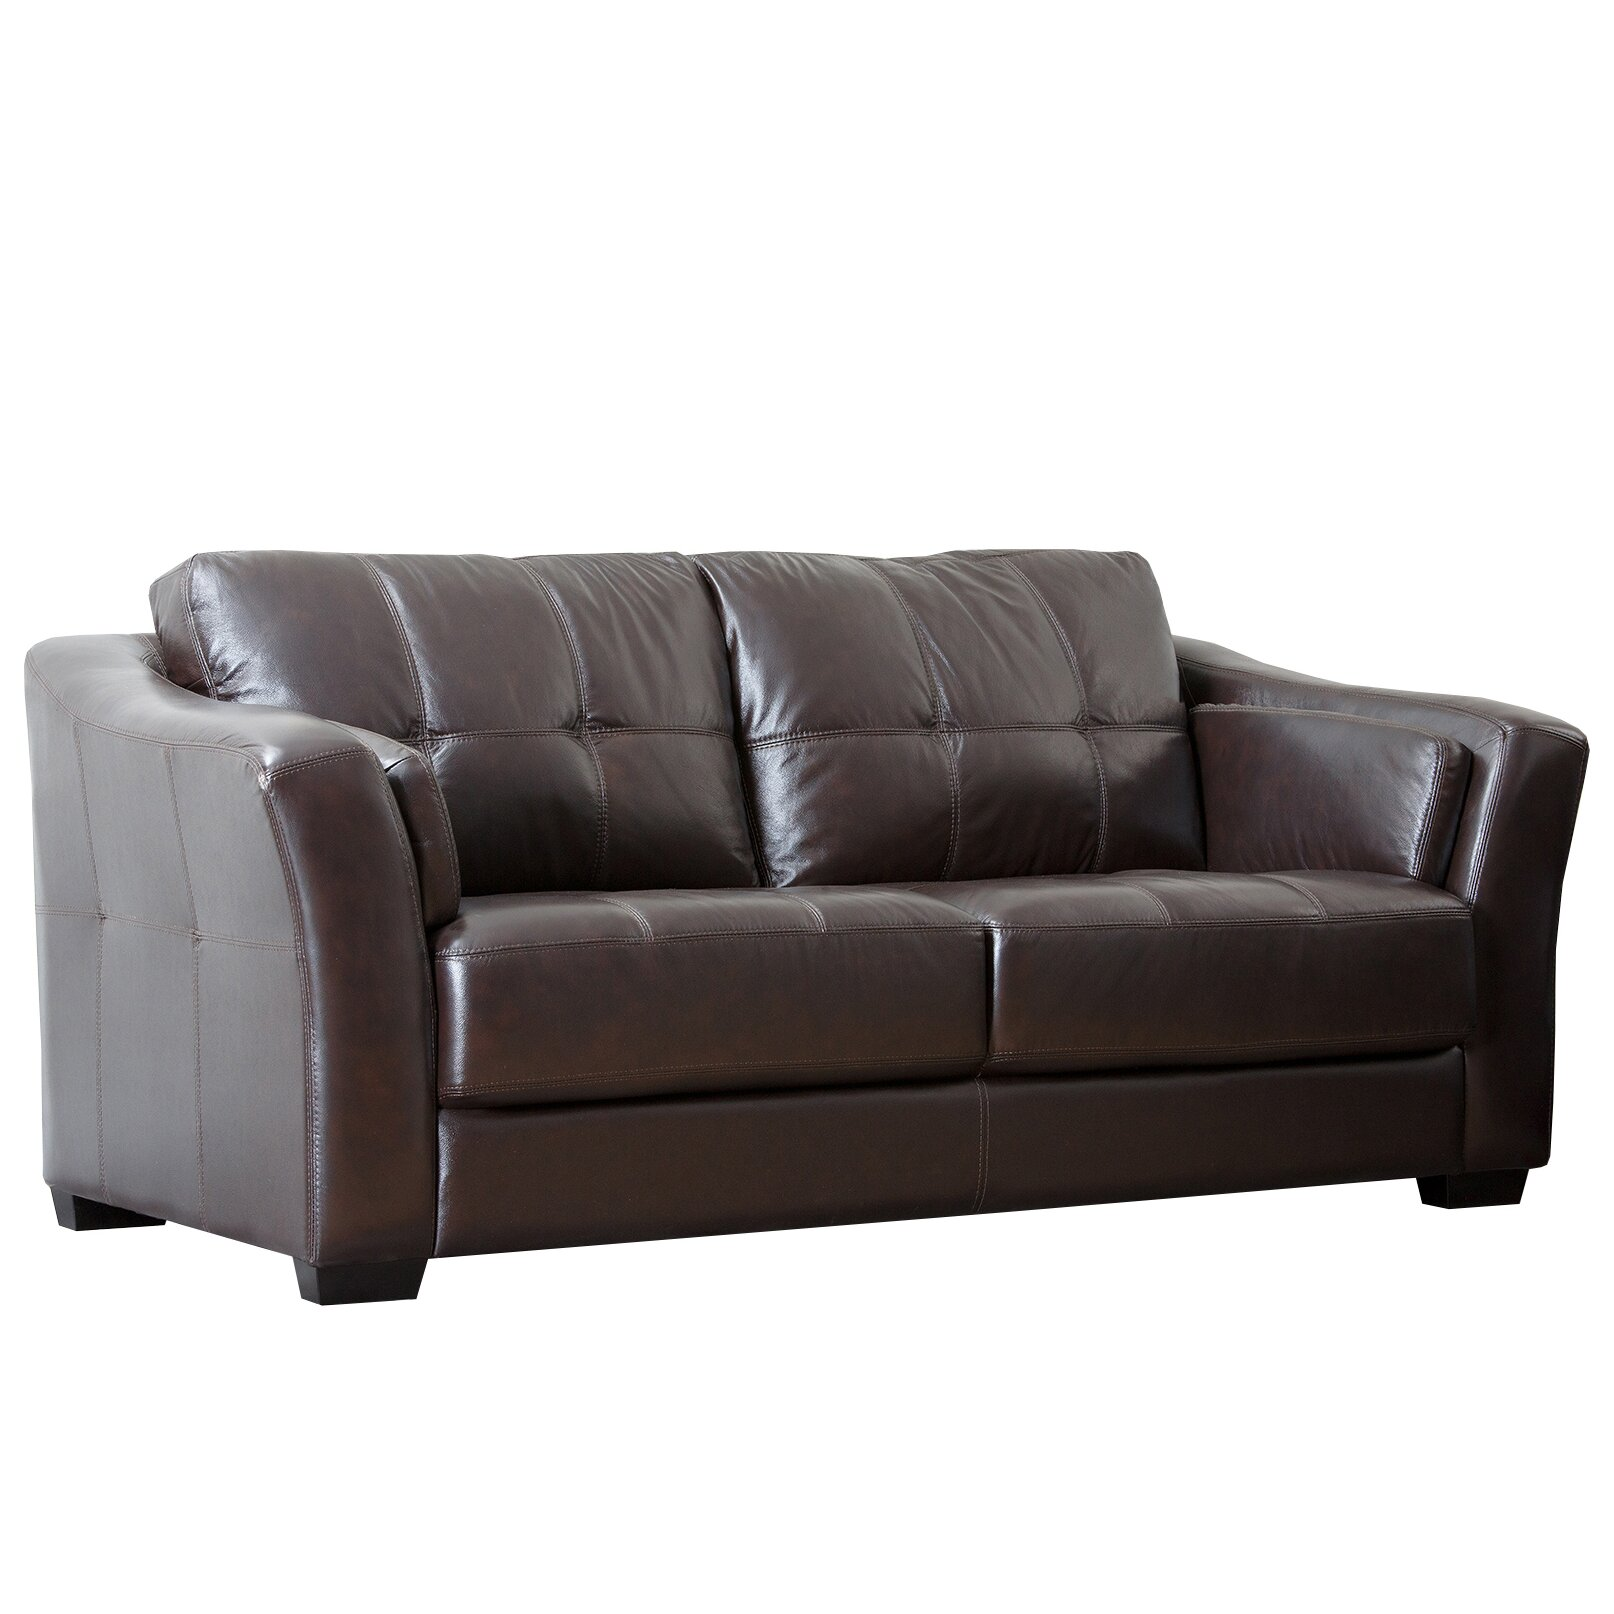 abbyson living sydney premium leather sofa reviews wayfair